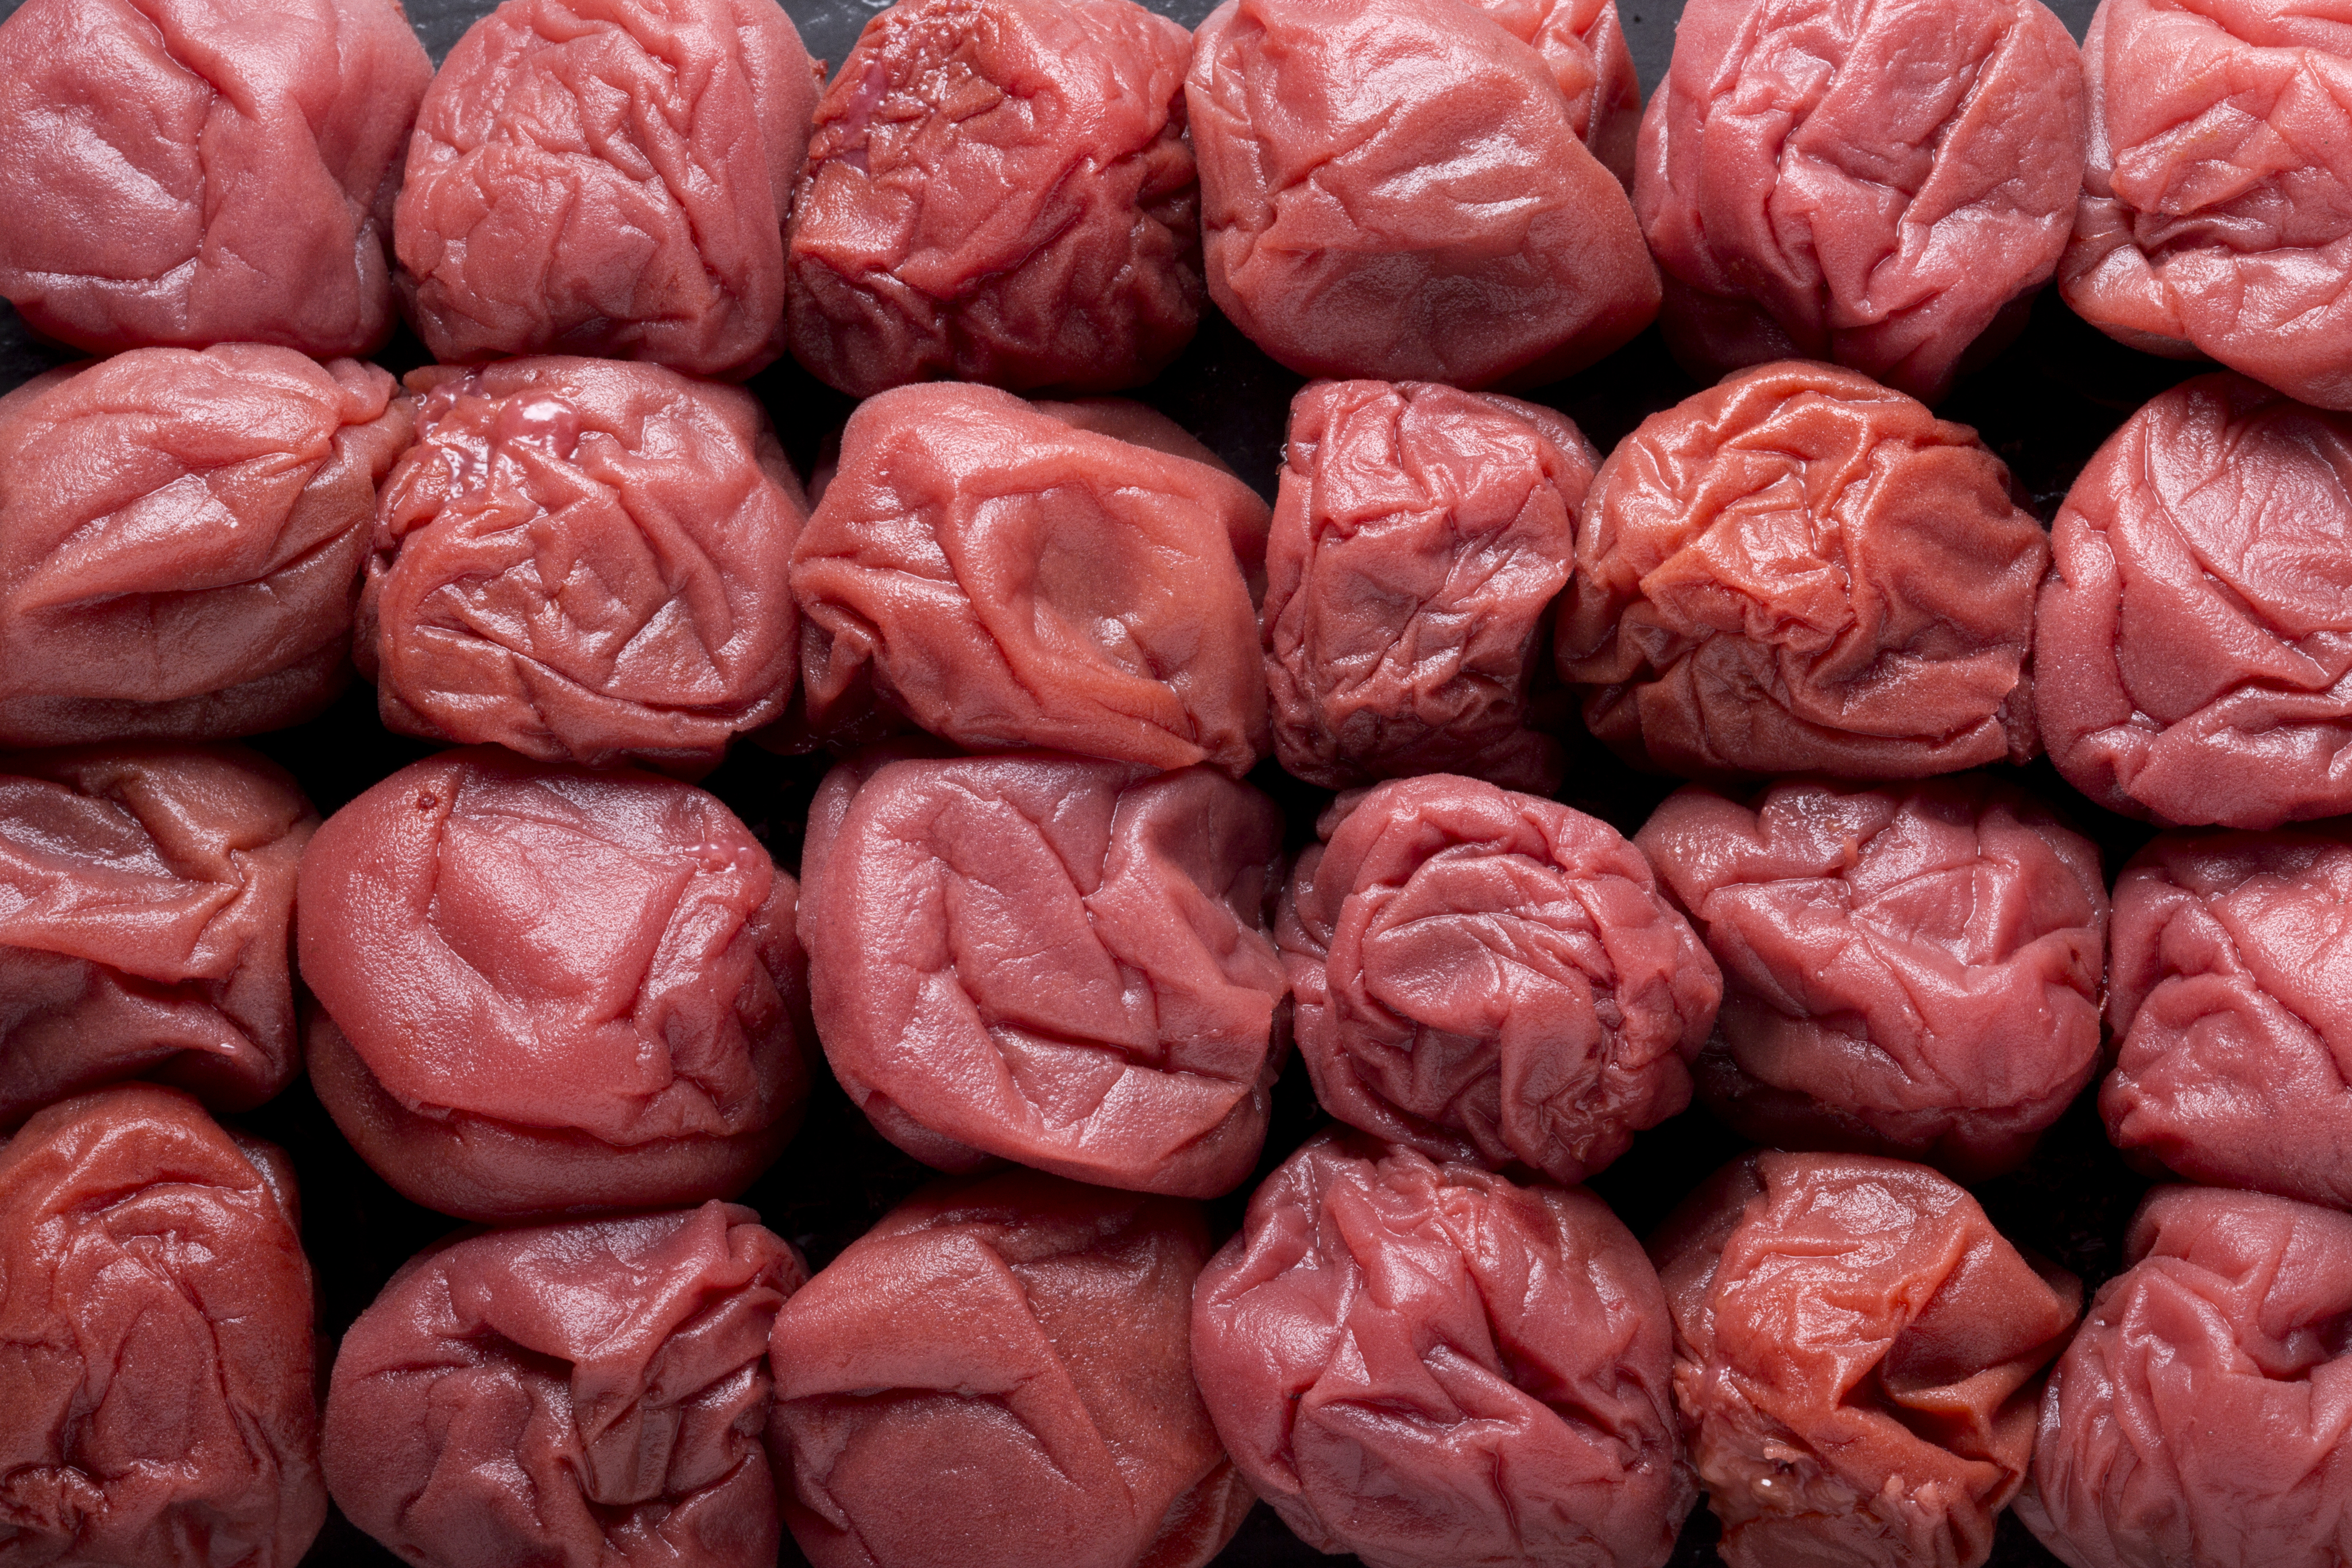 What Are Umeboshi Plums?